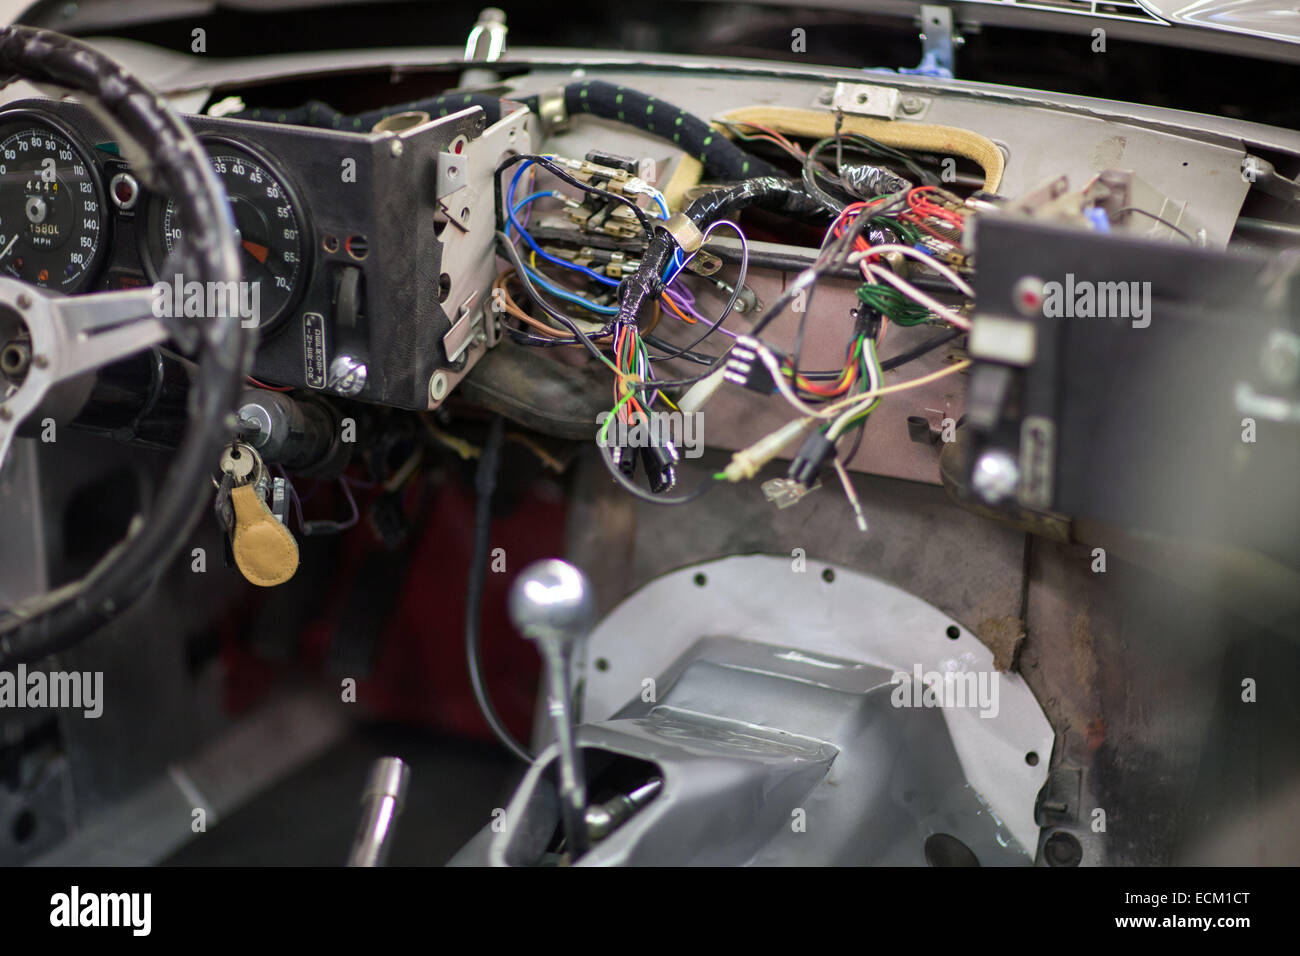 hight resolution of the dashboard wiring of a jaguar e type v12 at the repair shop of rh alamy com jaguar e type wiper motor wiring jaguar e type wiring diagram